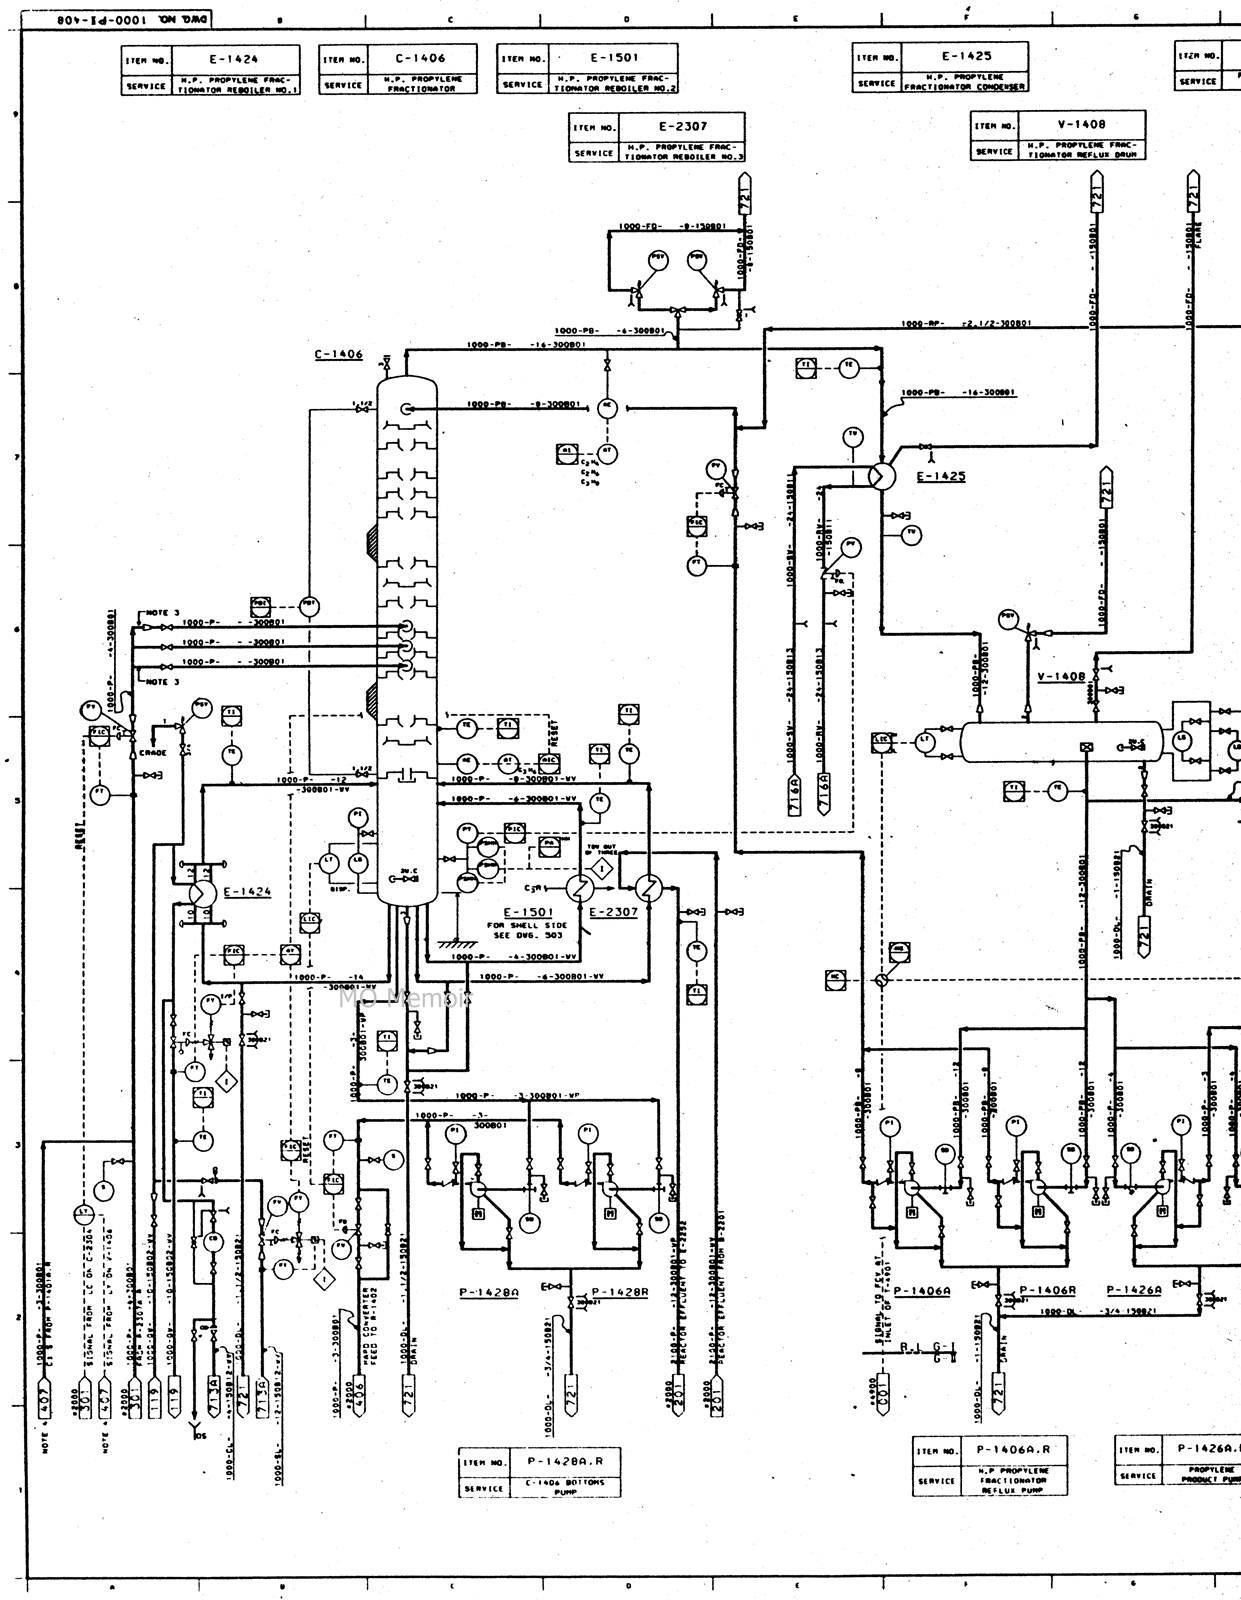 y plan wiring diagram pump overrun